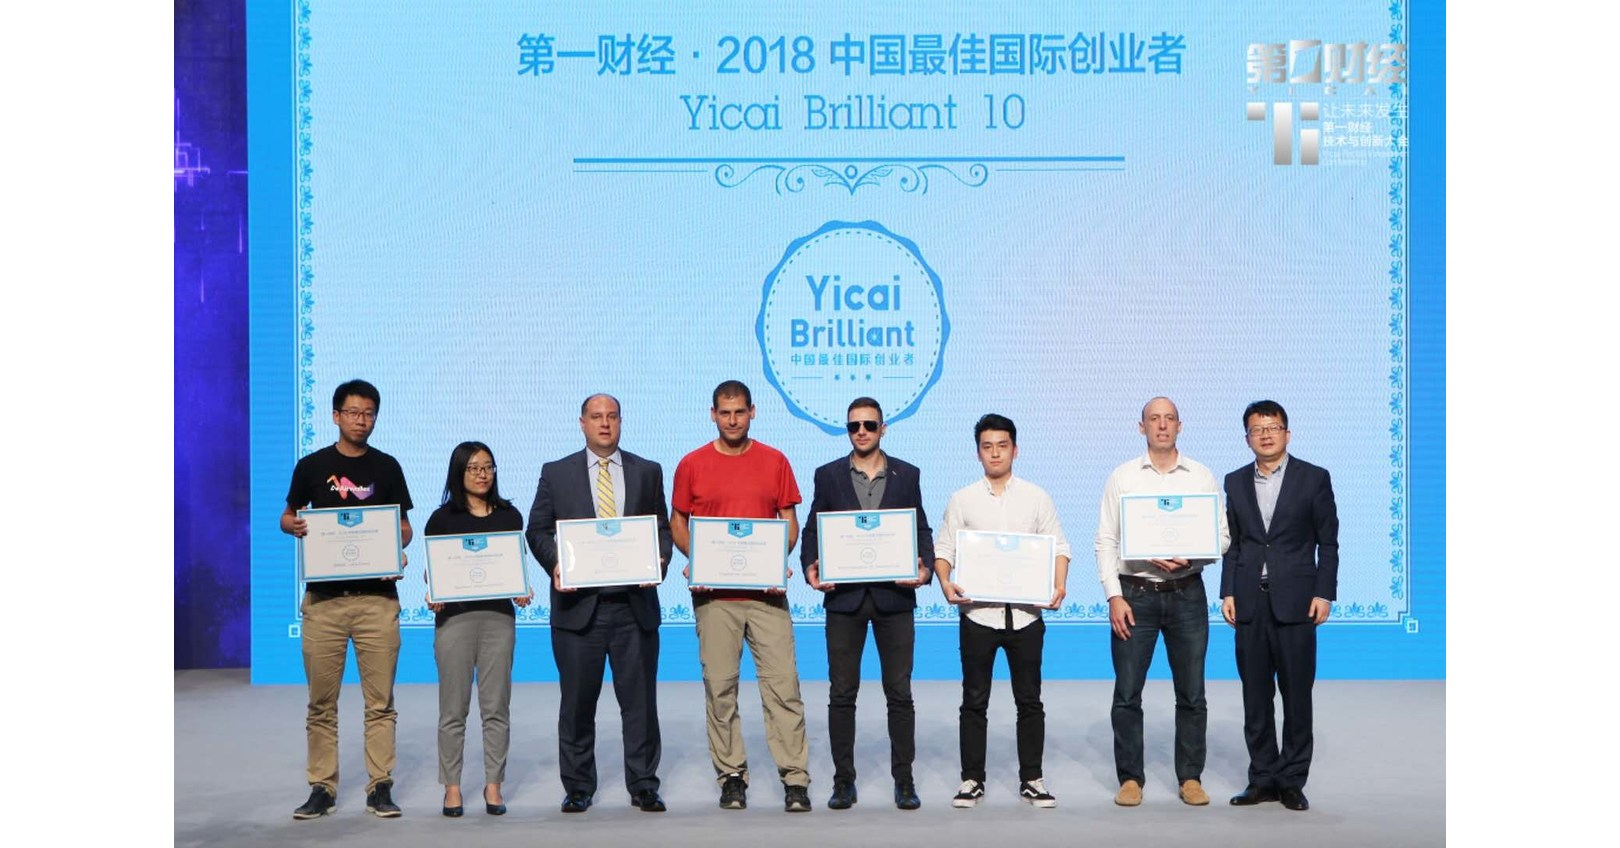 Ami Dror, CEO of LeapLearner, Named One of China's Top 10 ...